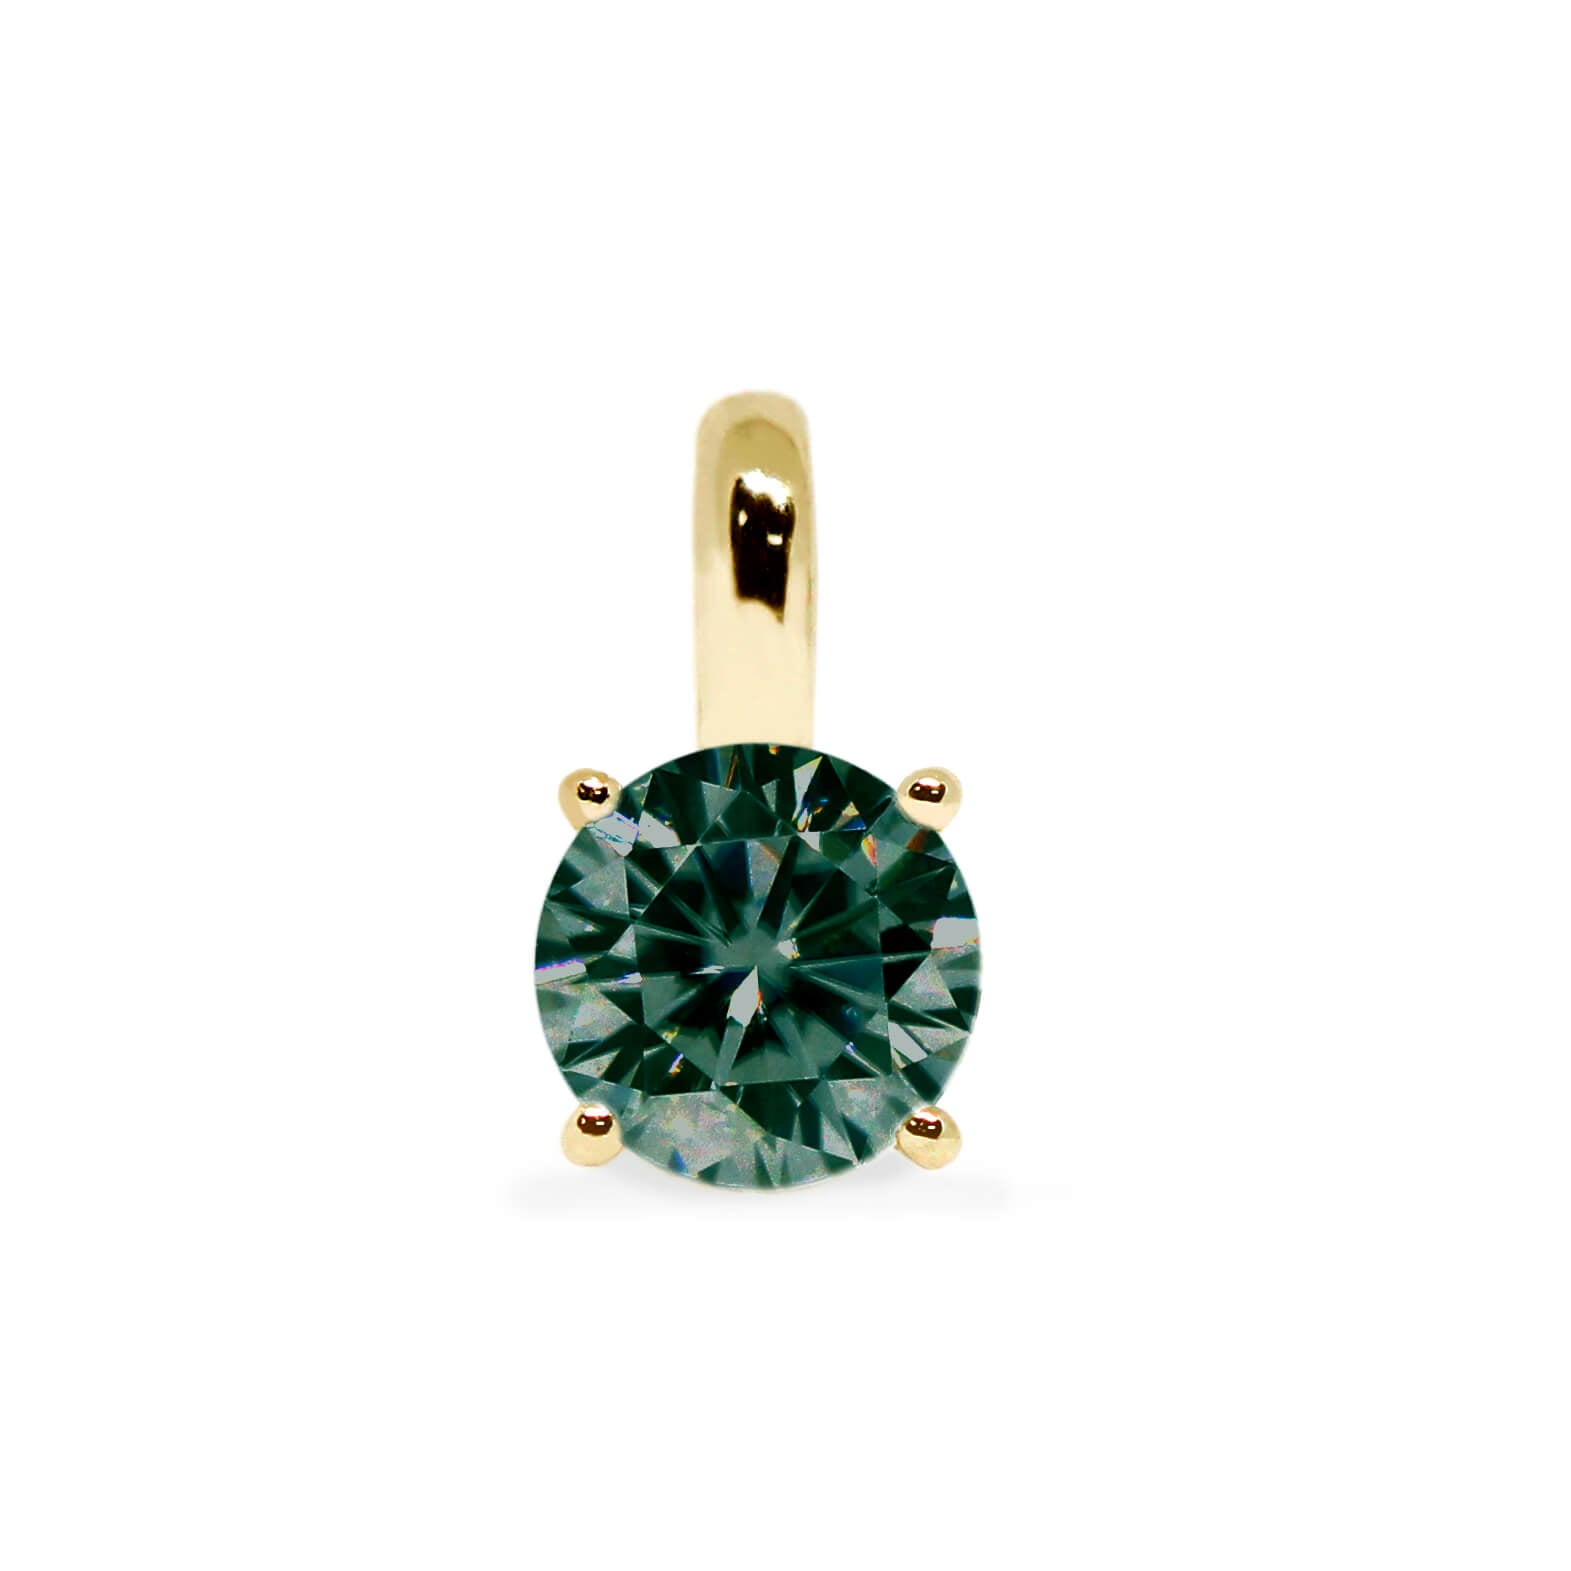 Dark Green Moissanite Round Solitaire 18K Gold Pendant lecaine gems Singapore Moissanite